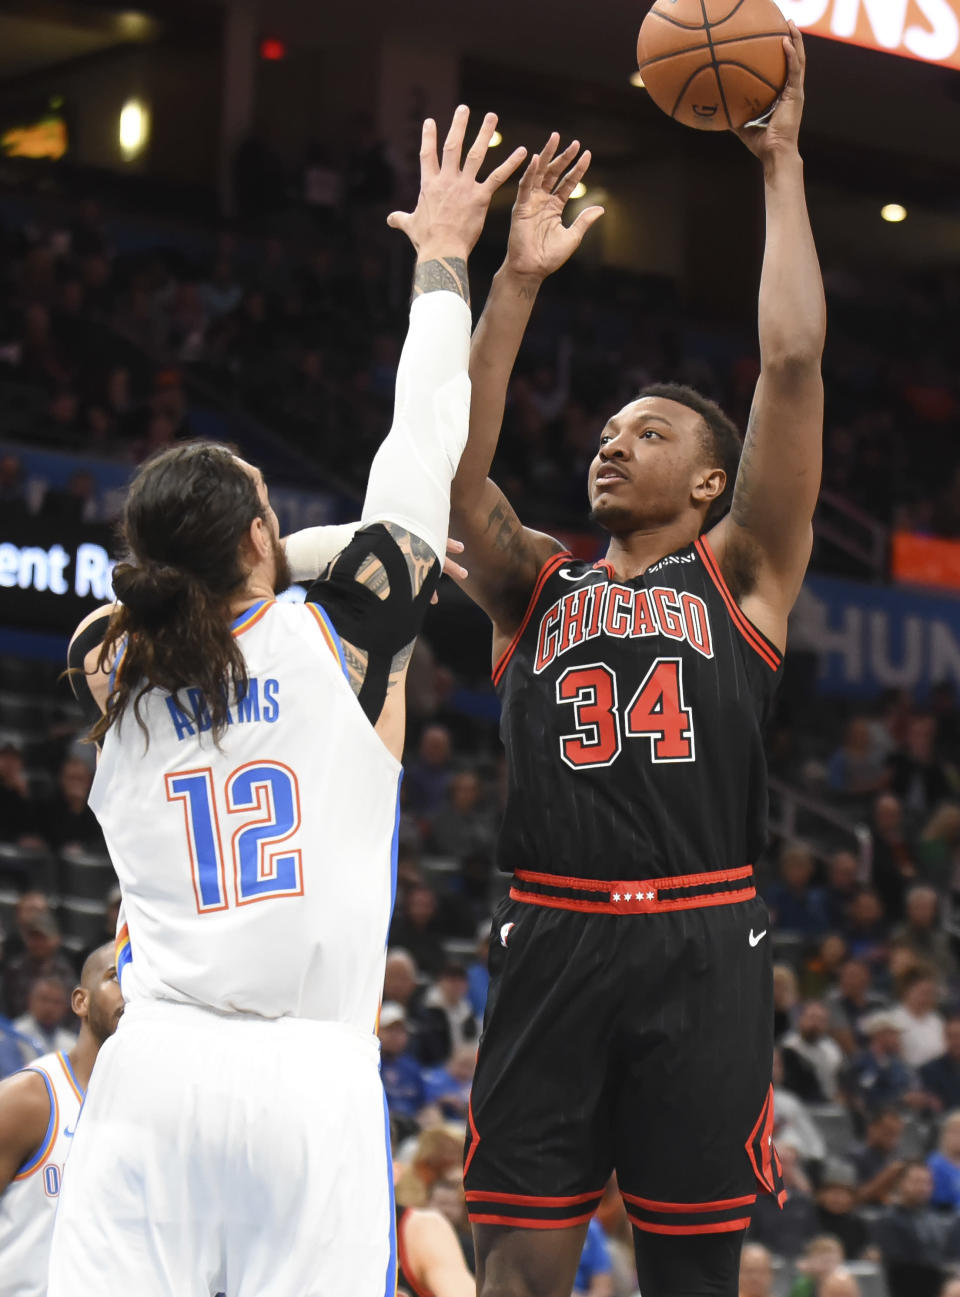 Chicago Bulls center Wendall Carter Jr. (34) shoots the ball over Oklahoma City Thunder center Steven Adams (12) in the first half of an NBA basketball game, Monday, Dec. 16, 2019, in Oklahoma City. (AP Photo/Kyle Phillips)